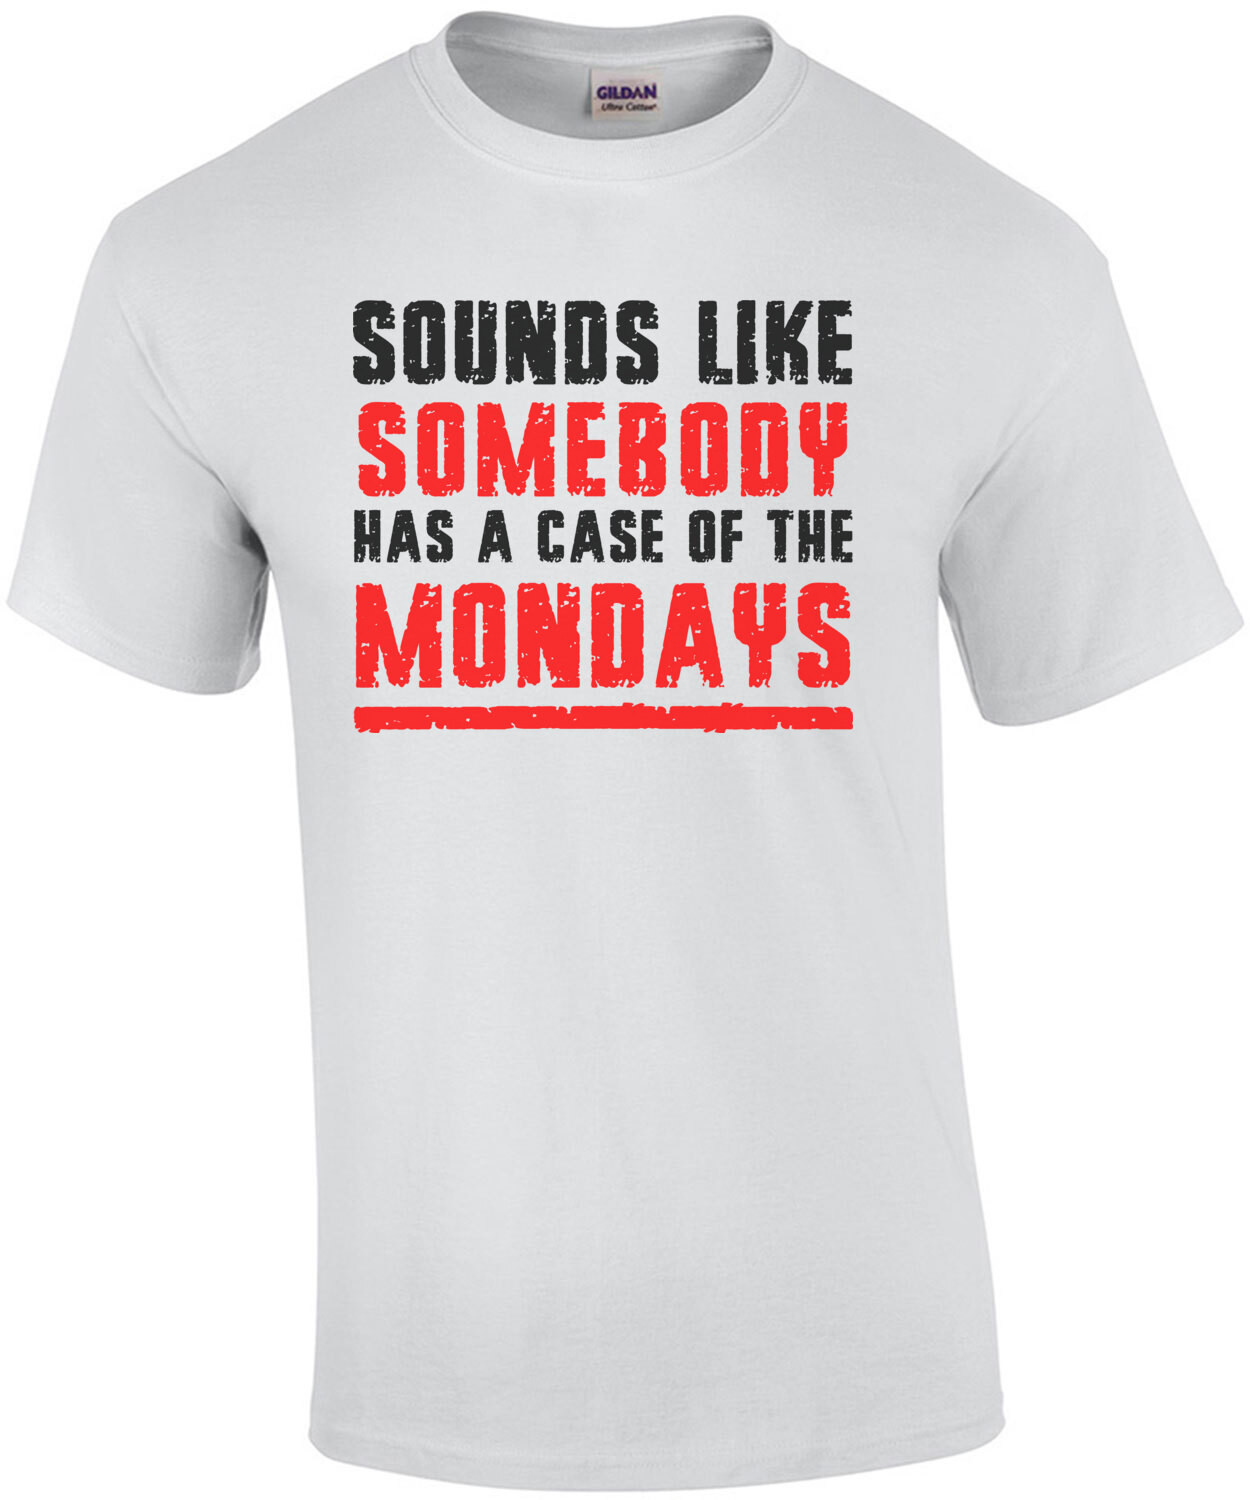 Sounds like somebody has a case of the Mondays - Office Space - 90's T-Shirt